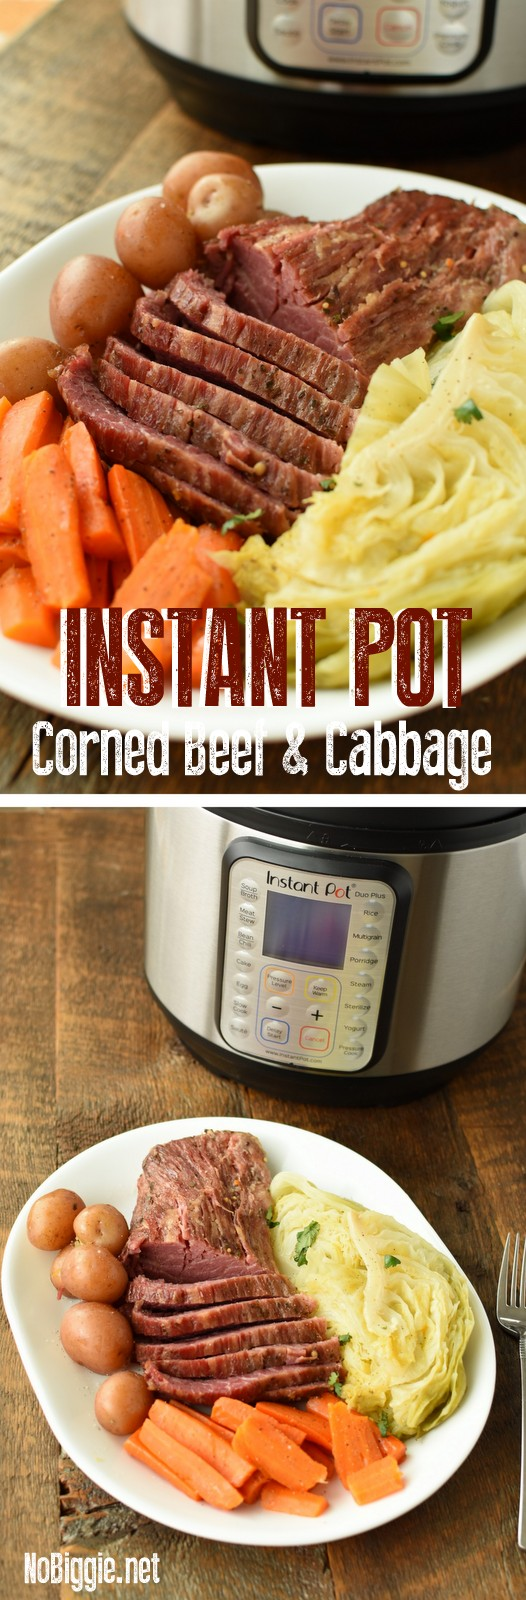 Instant Pot Corned Beef and Cabbage! A classic meal now made in the Instant Pot! #instantpotrecipes #cornedbeefandcabbage #stpattysmeals #instantpotmeals #instantpot